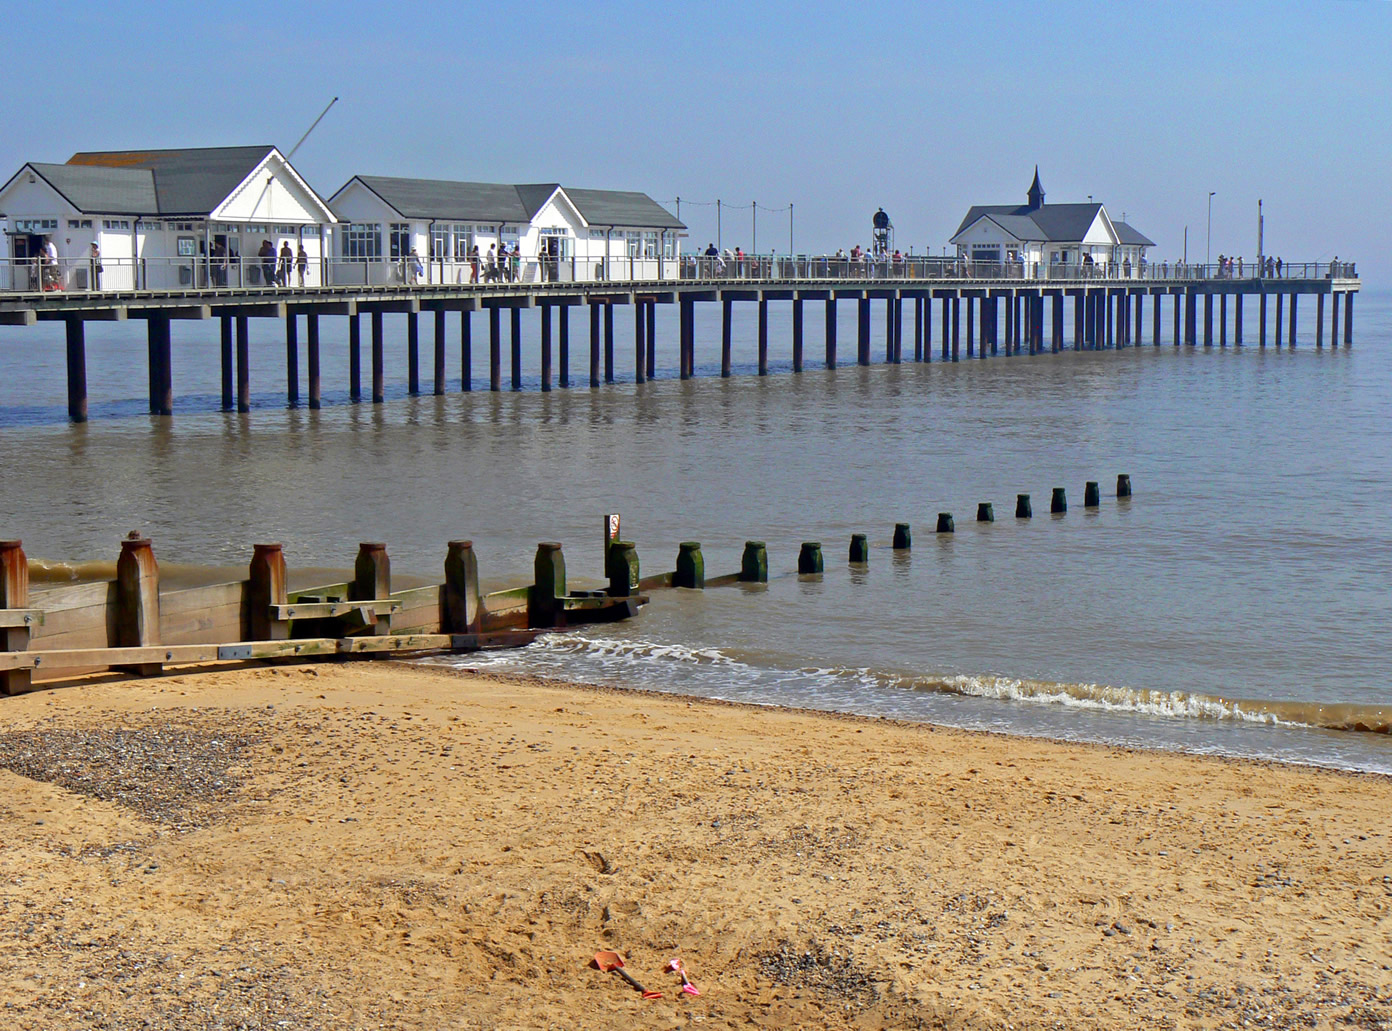 Southwold Pier by Irina T - Digital Photographer